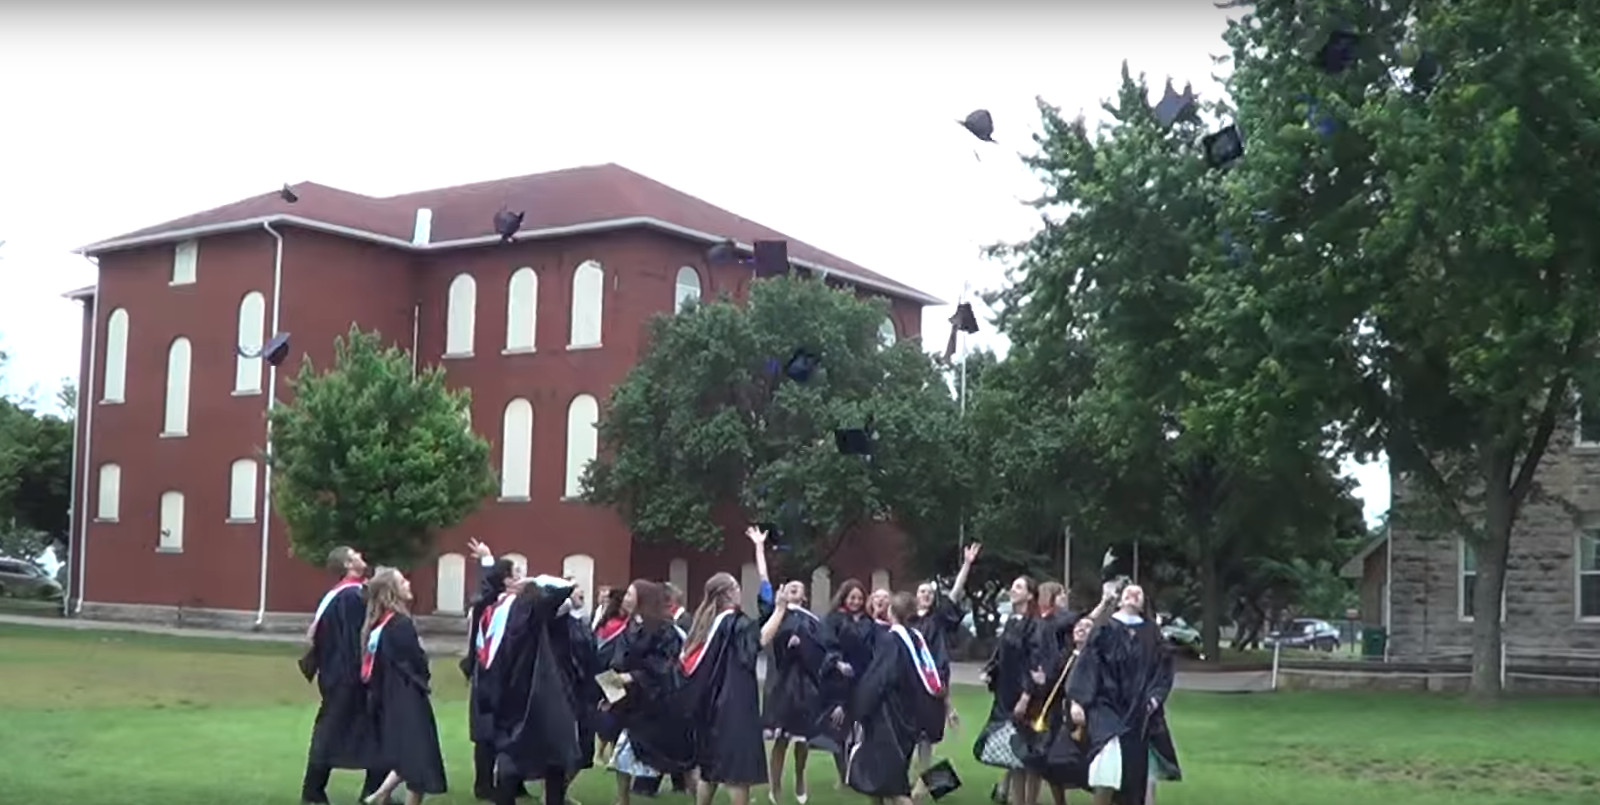 Students throwing their hats after graduating high school.